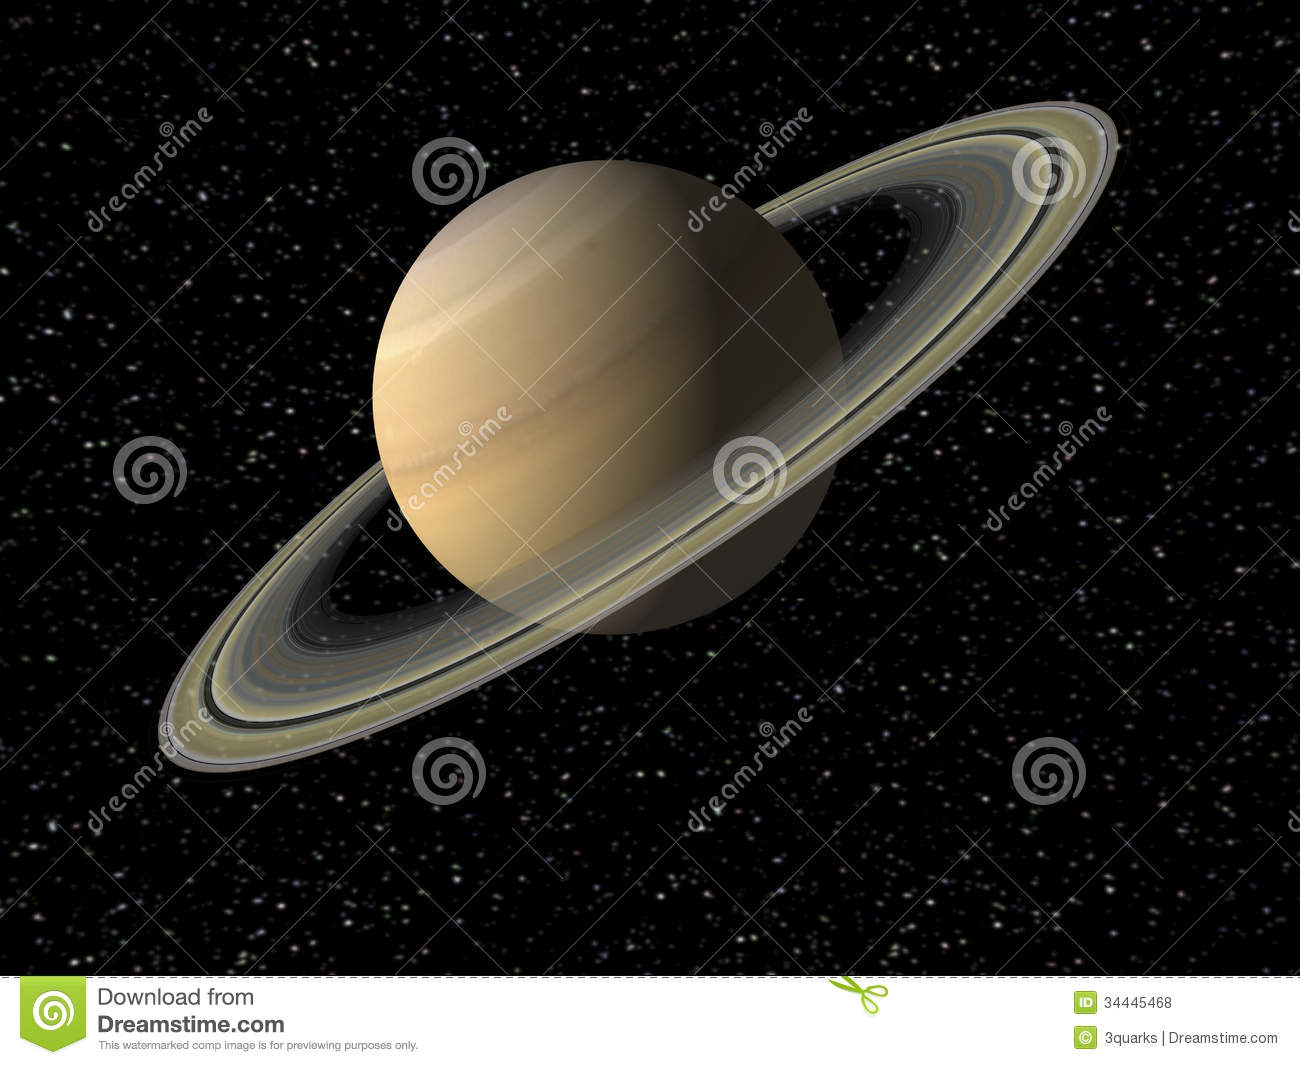 digital images of saturn the planet - photo #19